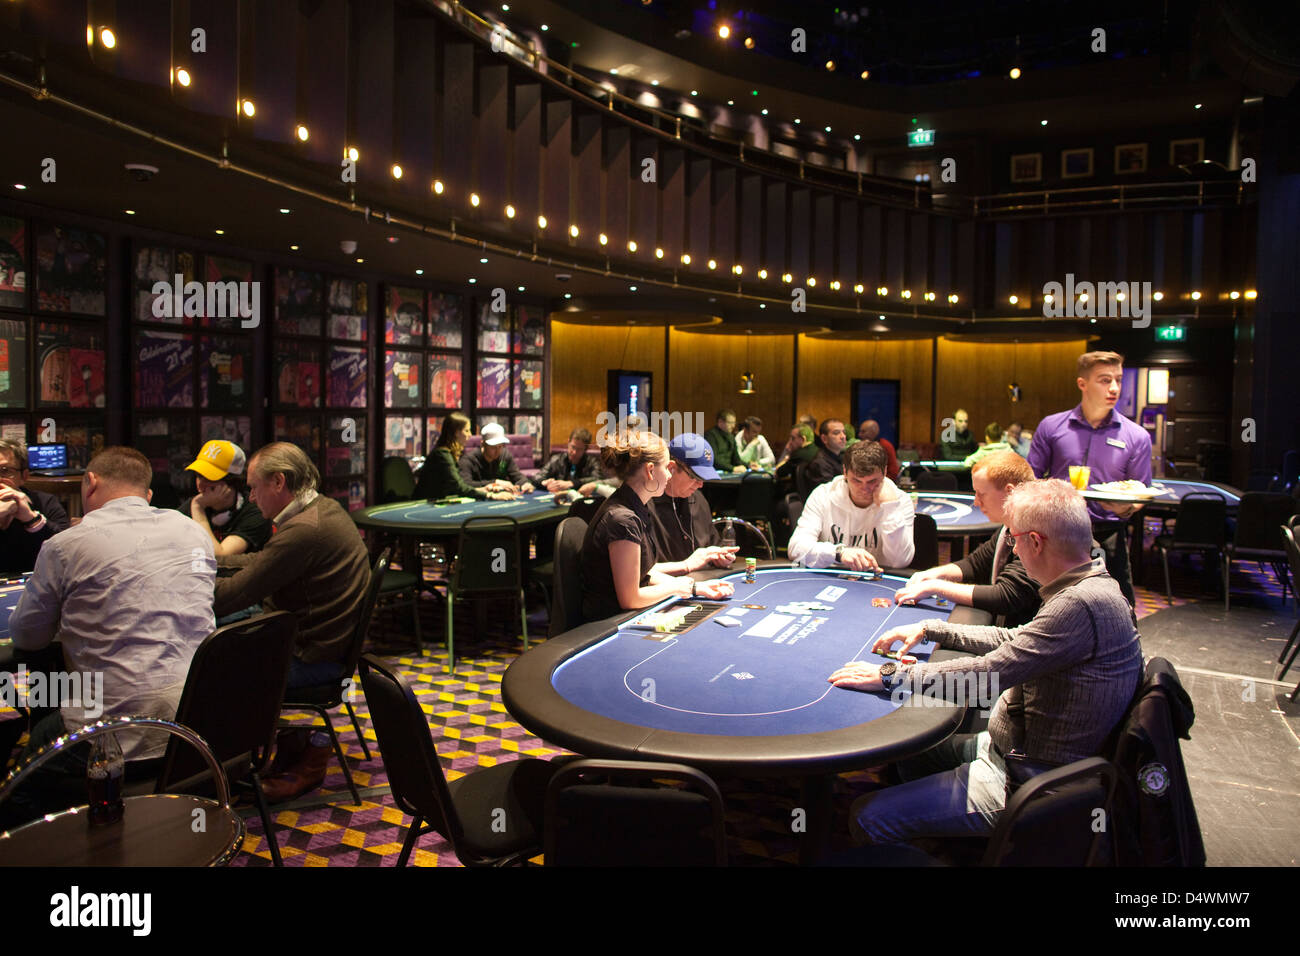 london casino poker